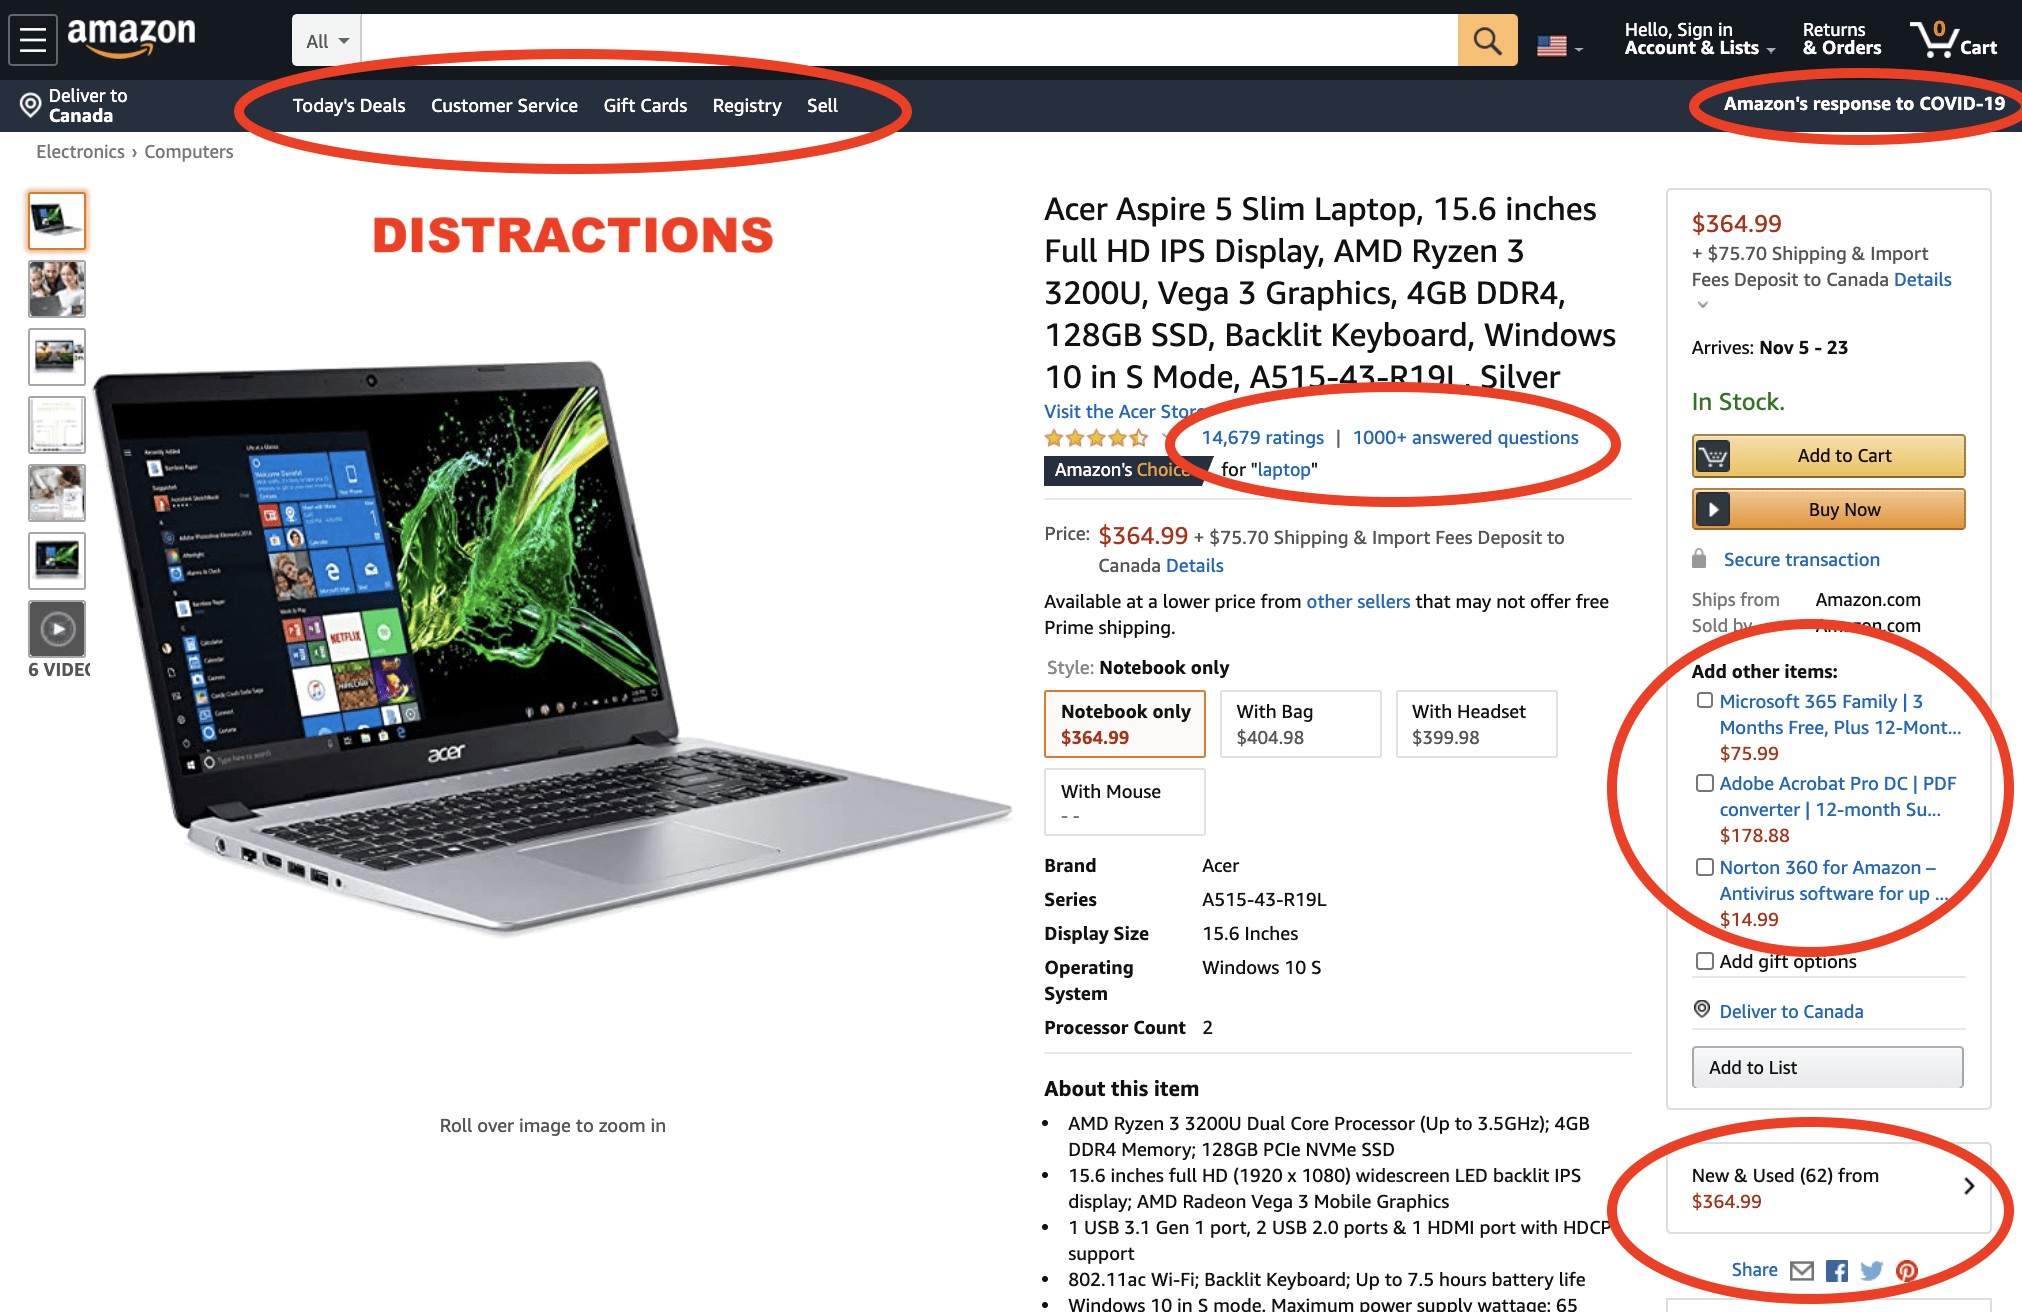 There are lots of links distracting visitors from Amazon pages